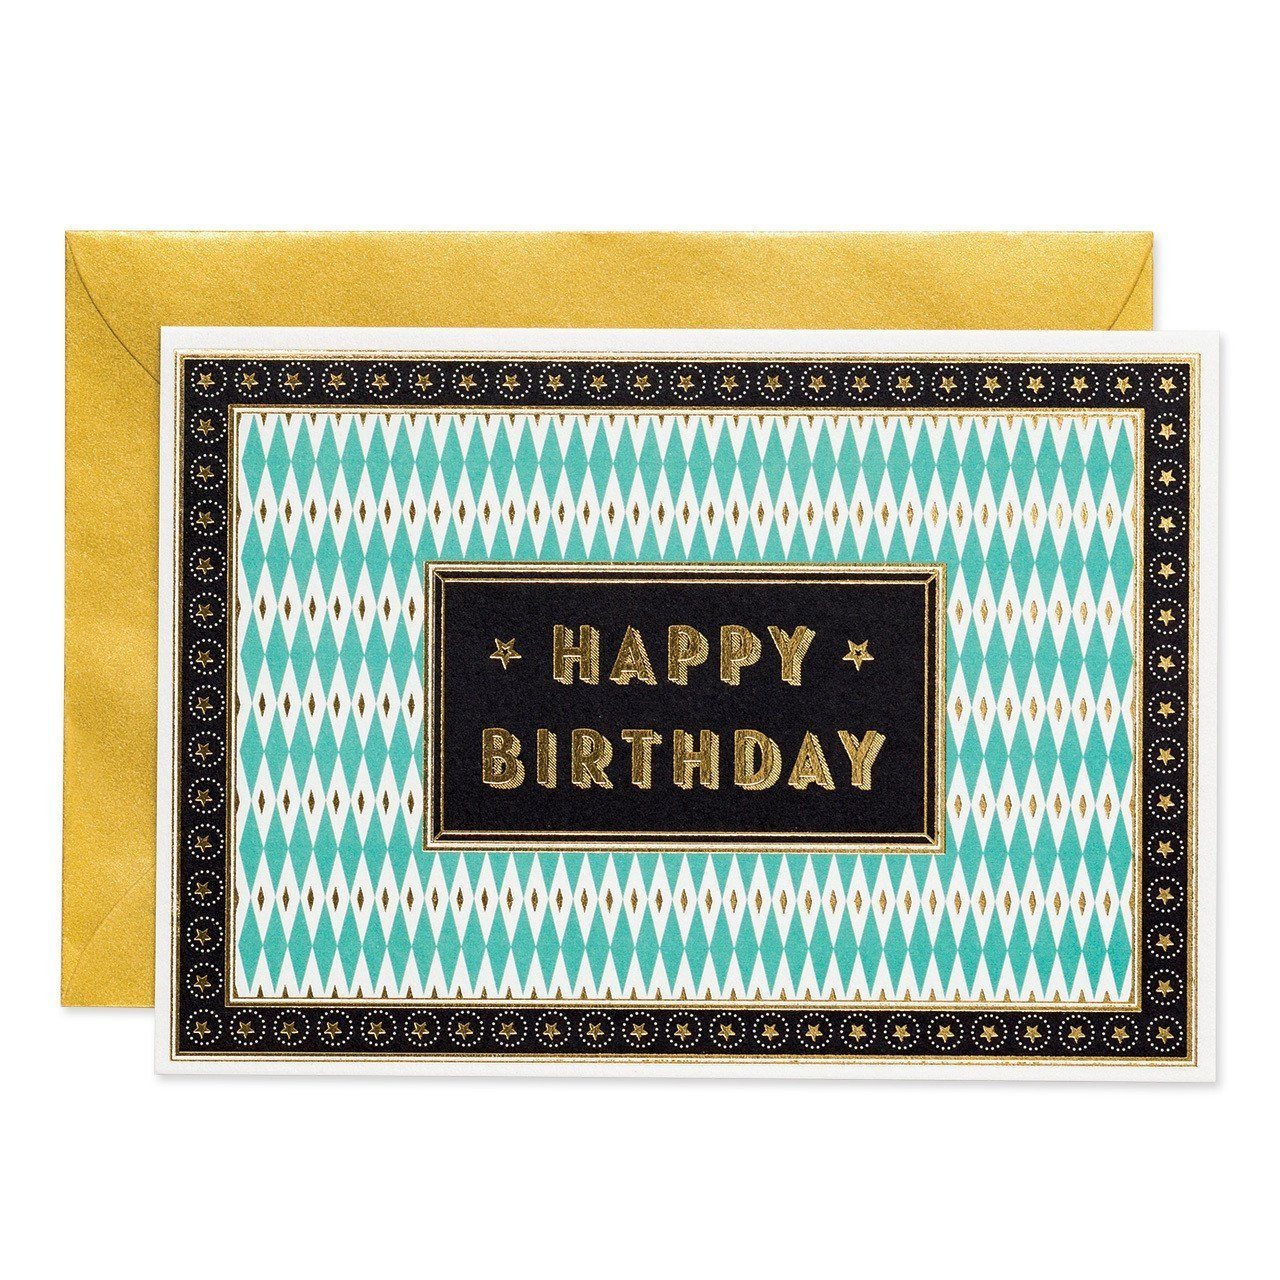 Happy Birthday - Art Deco greeting card - Chase and Wonder - Proudly Made in Britain